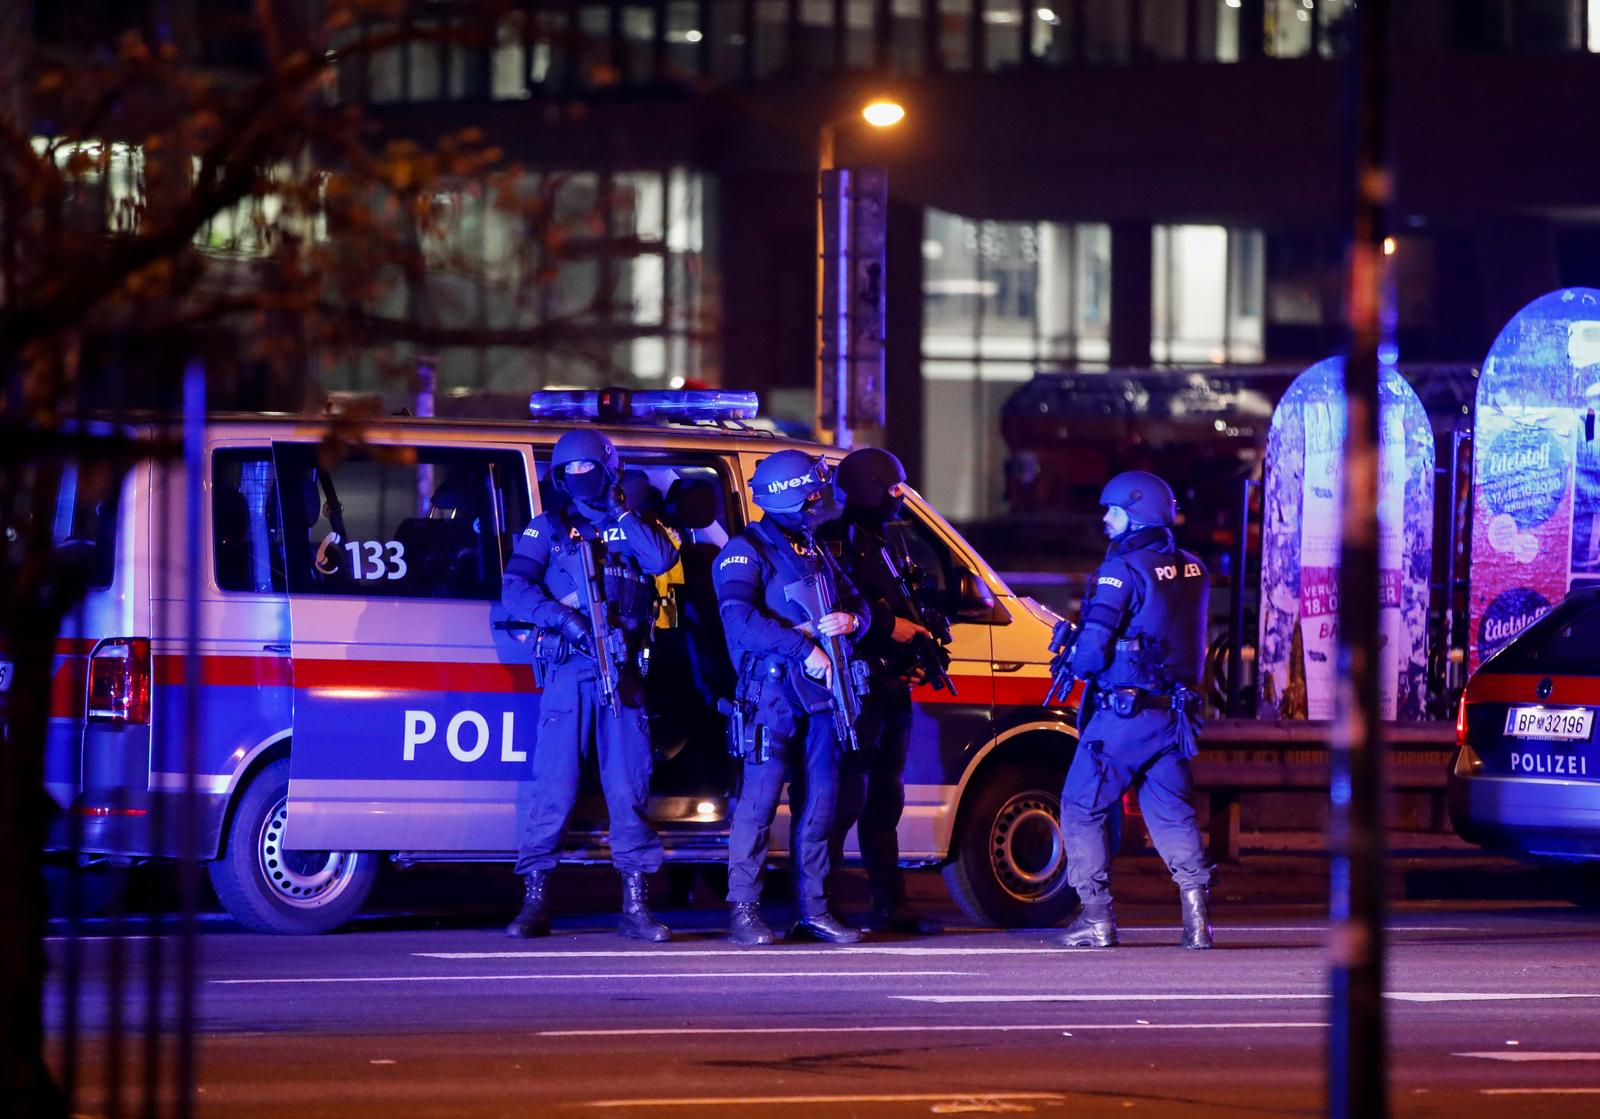 Police officers stand guard on a street after exchanges of gunfire in Vienna, Austria November 3, 2020. Photo: Reuters